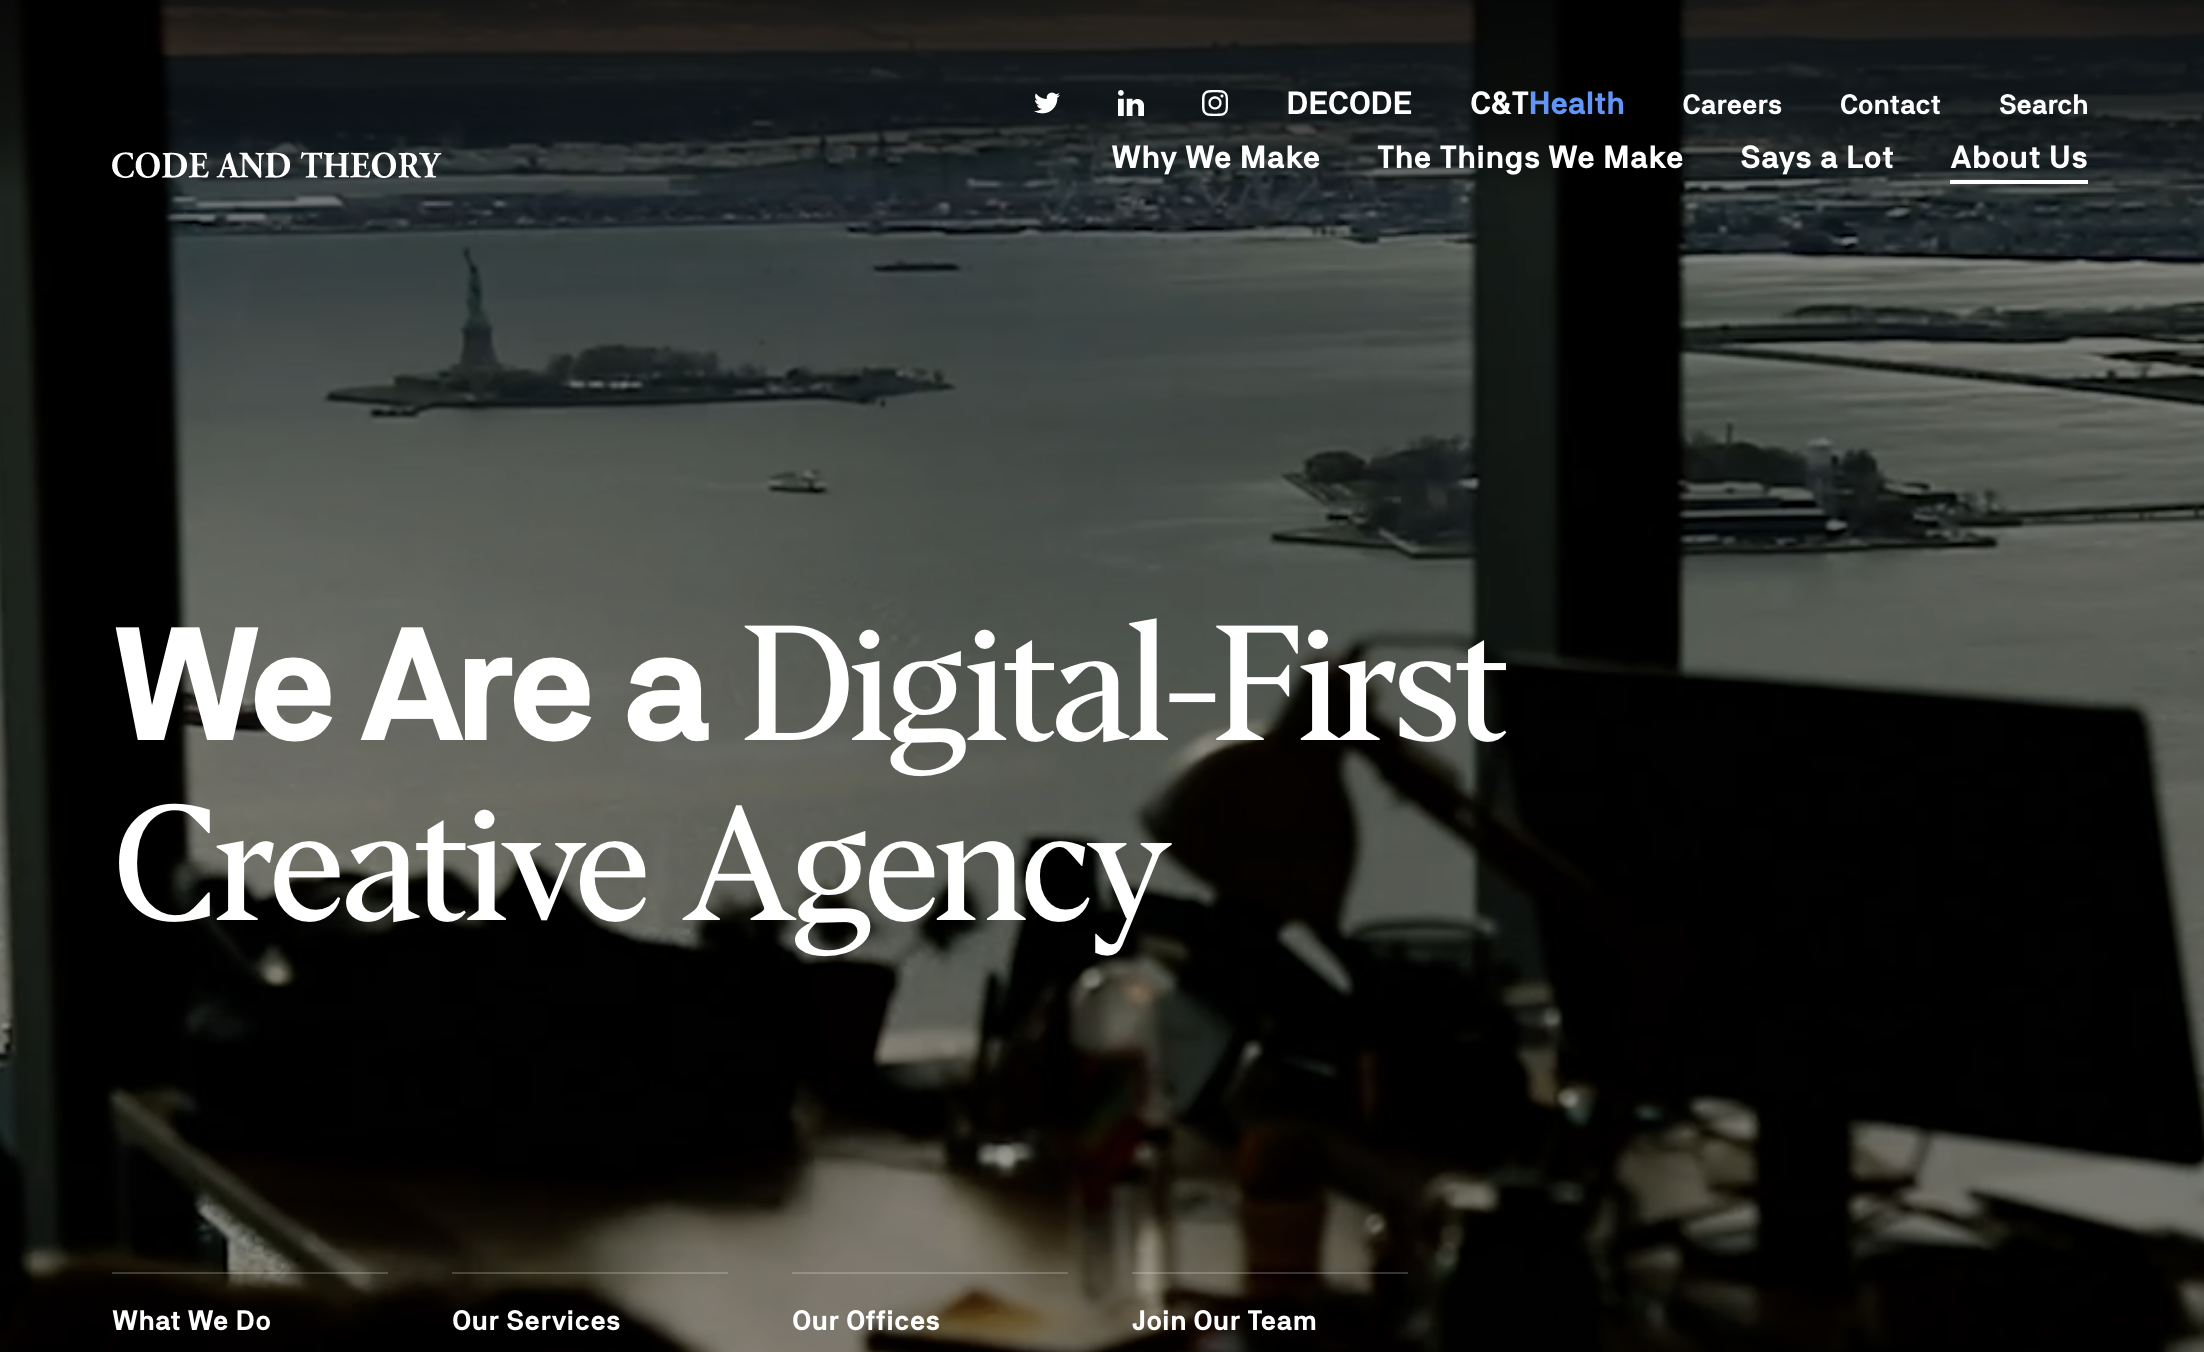 Code and Theory: digital creative agency and UX firm